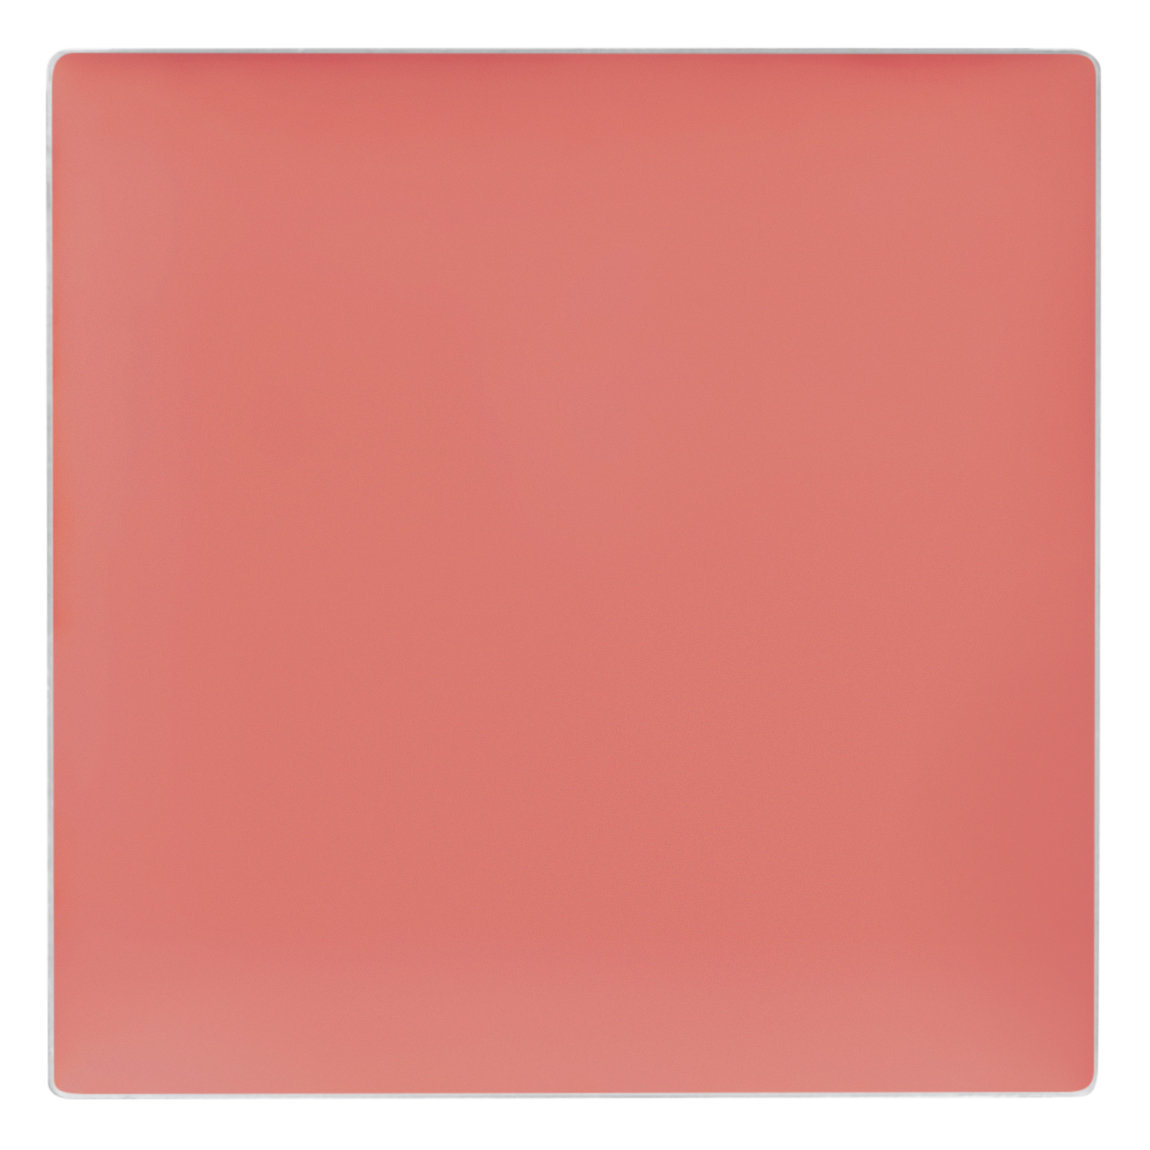 Kjaer Weis Cream Blush Refill Sun Touched alternative view 1 - product swatch.